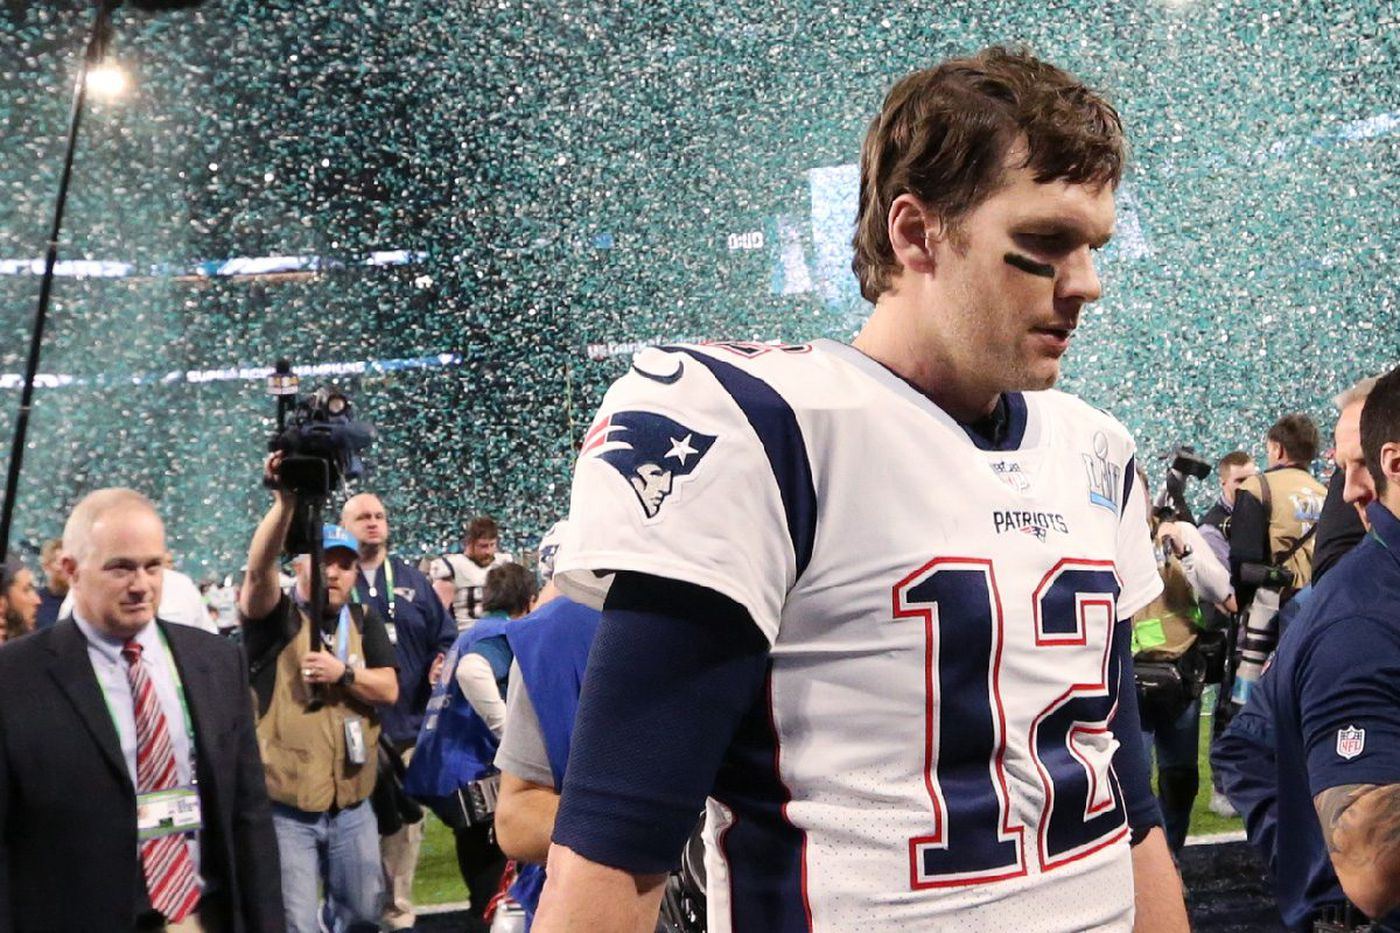 Tom Brady opens up about Super Bowl loss: 'I thought we were going to win'